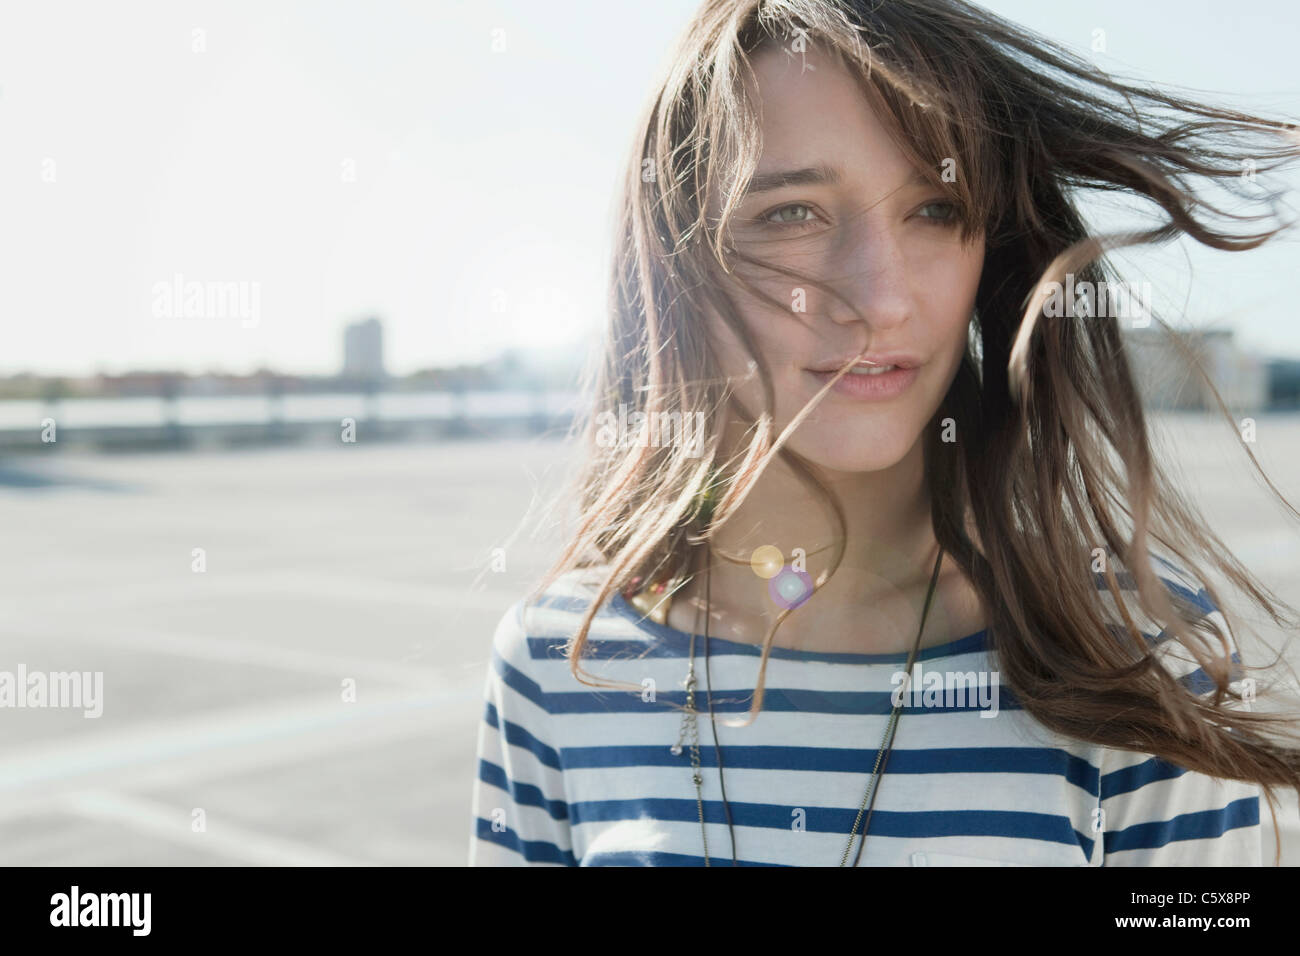 Germany, Berlin, Young woman on deserted parking level, portrait, close-up - Stock Image